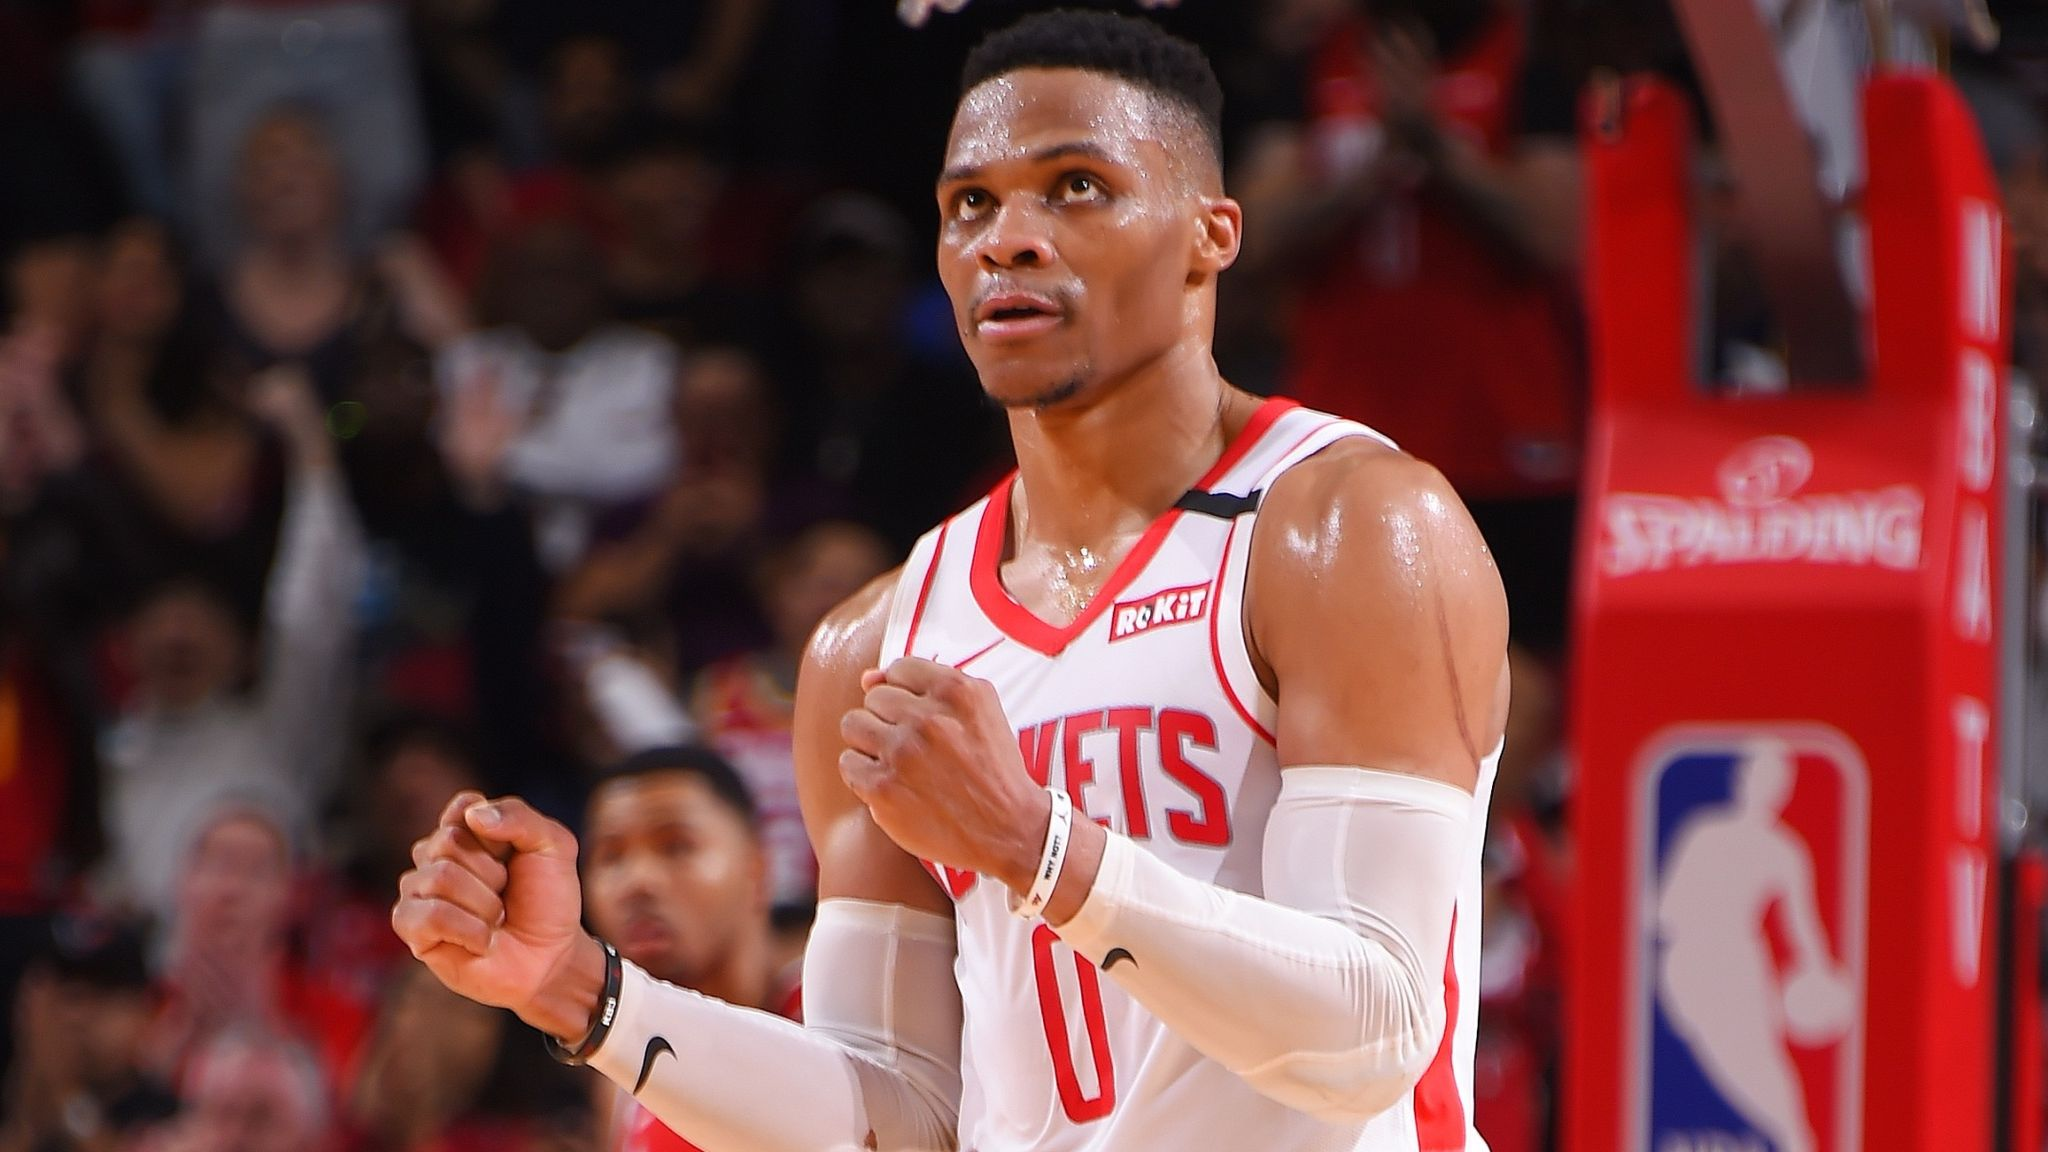 Russell Westbrook thriving at Houston Rockets now he's playing as 'best version of himself'